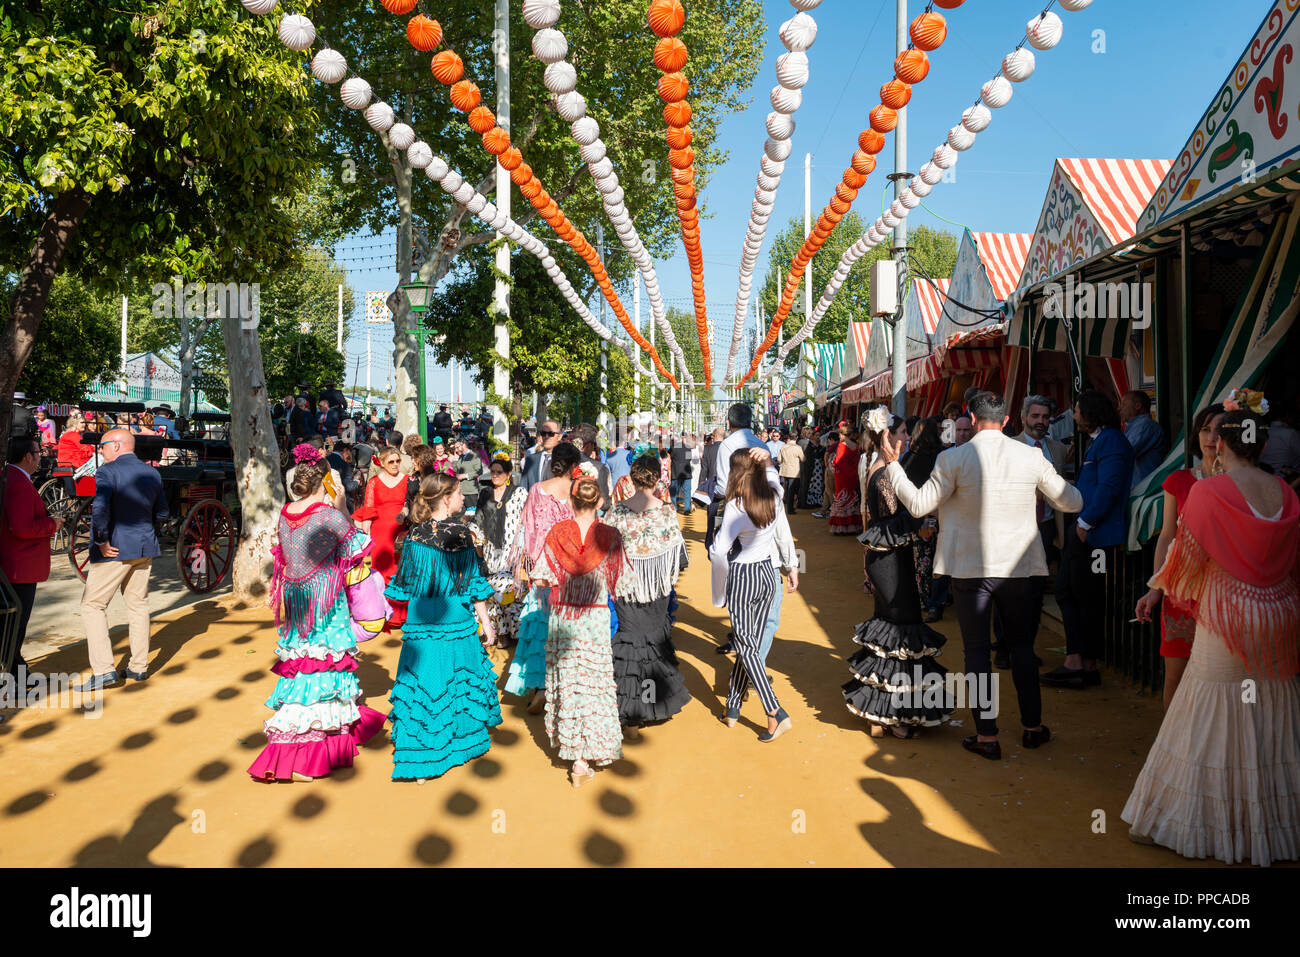 Spanish women with colorful flamenco dresses in front of marquees, Casetas, Feria de Abril, Sevilla, Andalusia, Spain Stock Photo